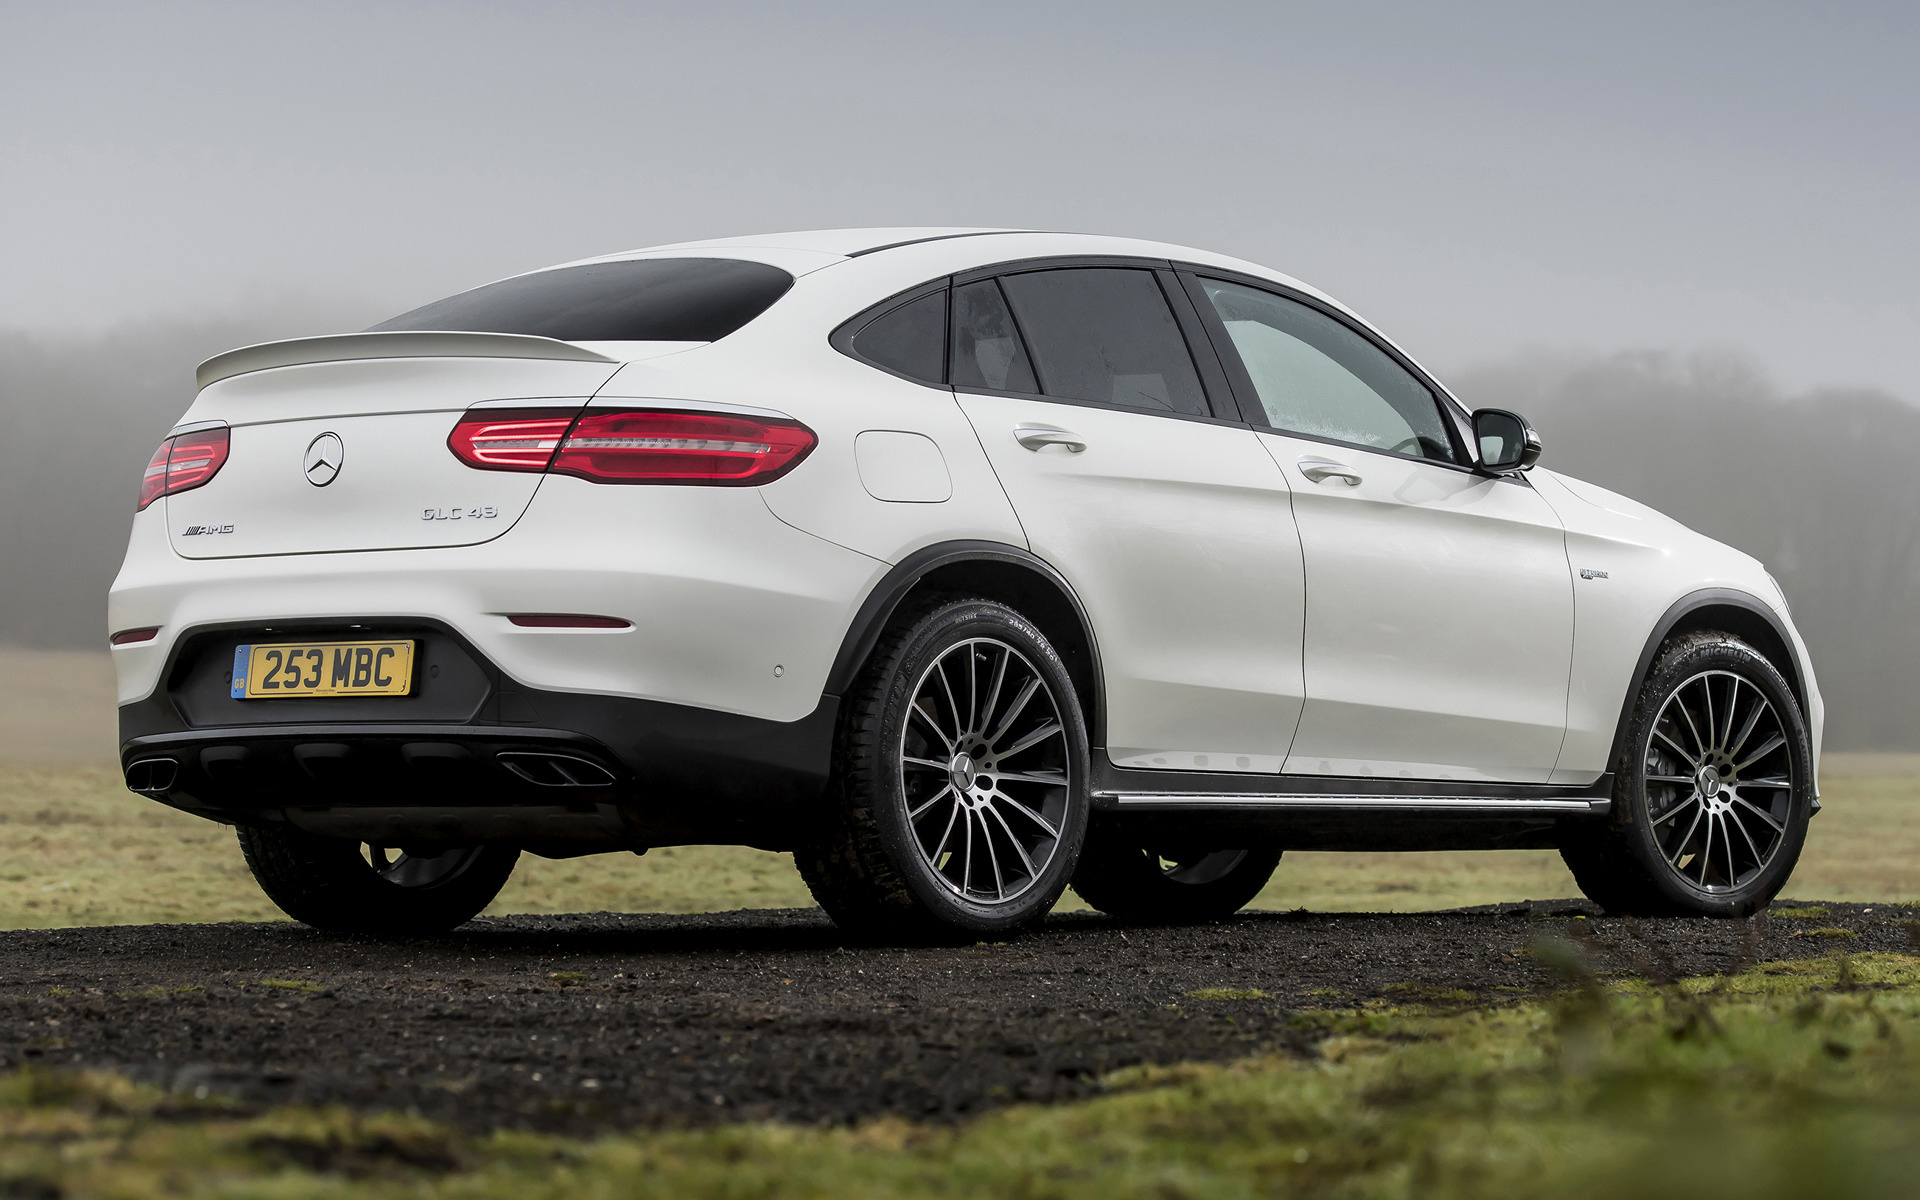 Car Jeep 2017 Mercedes-amg Glc 43 Coupe (uk) - Wallpapers And Hd